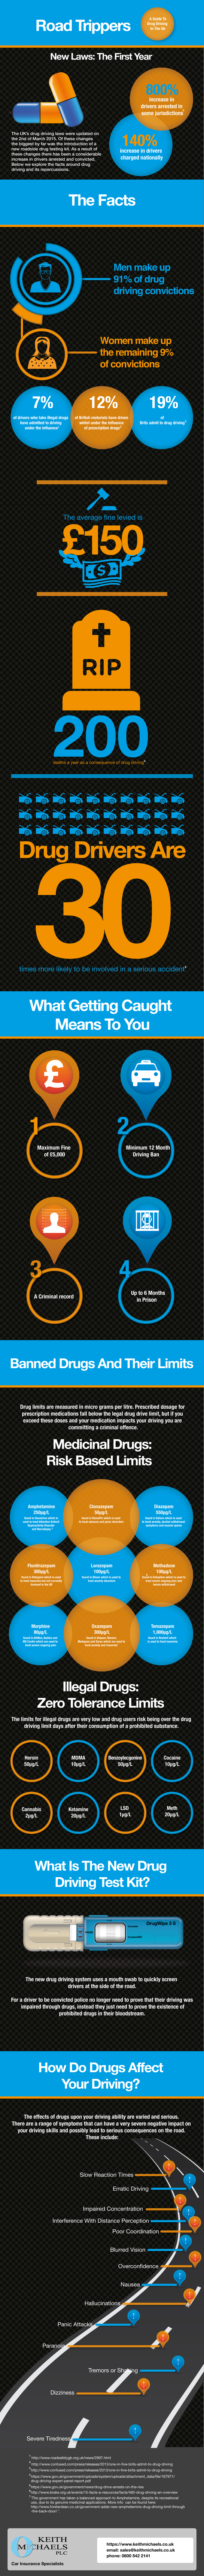 Drug Driving infographic